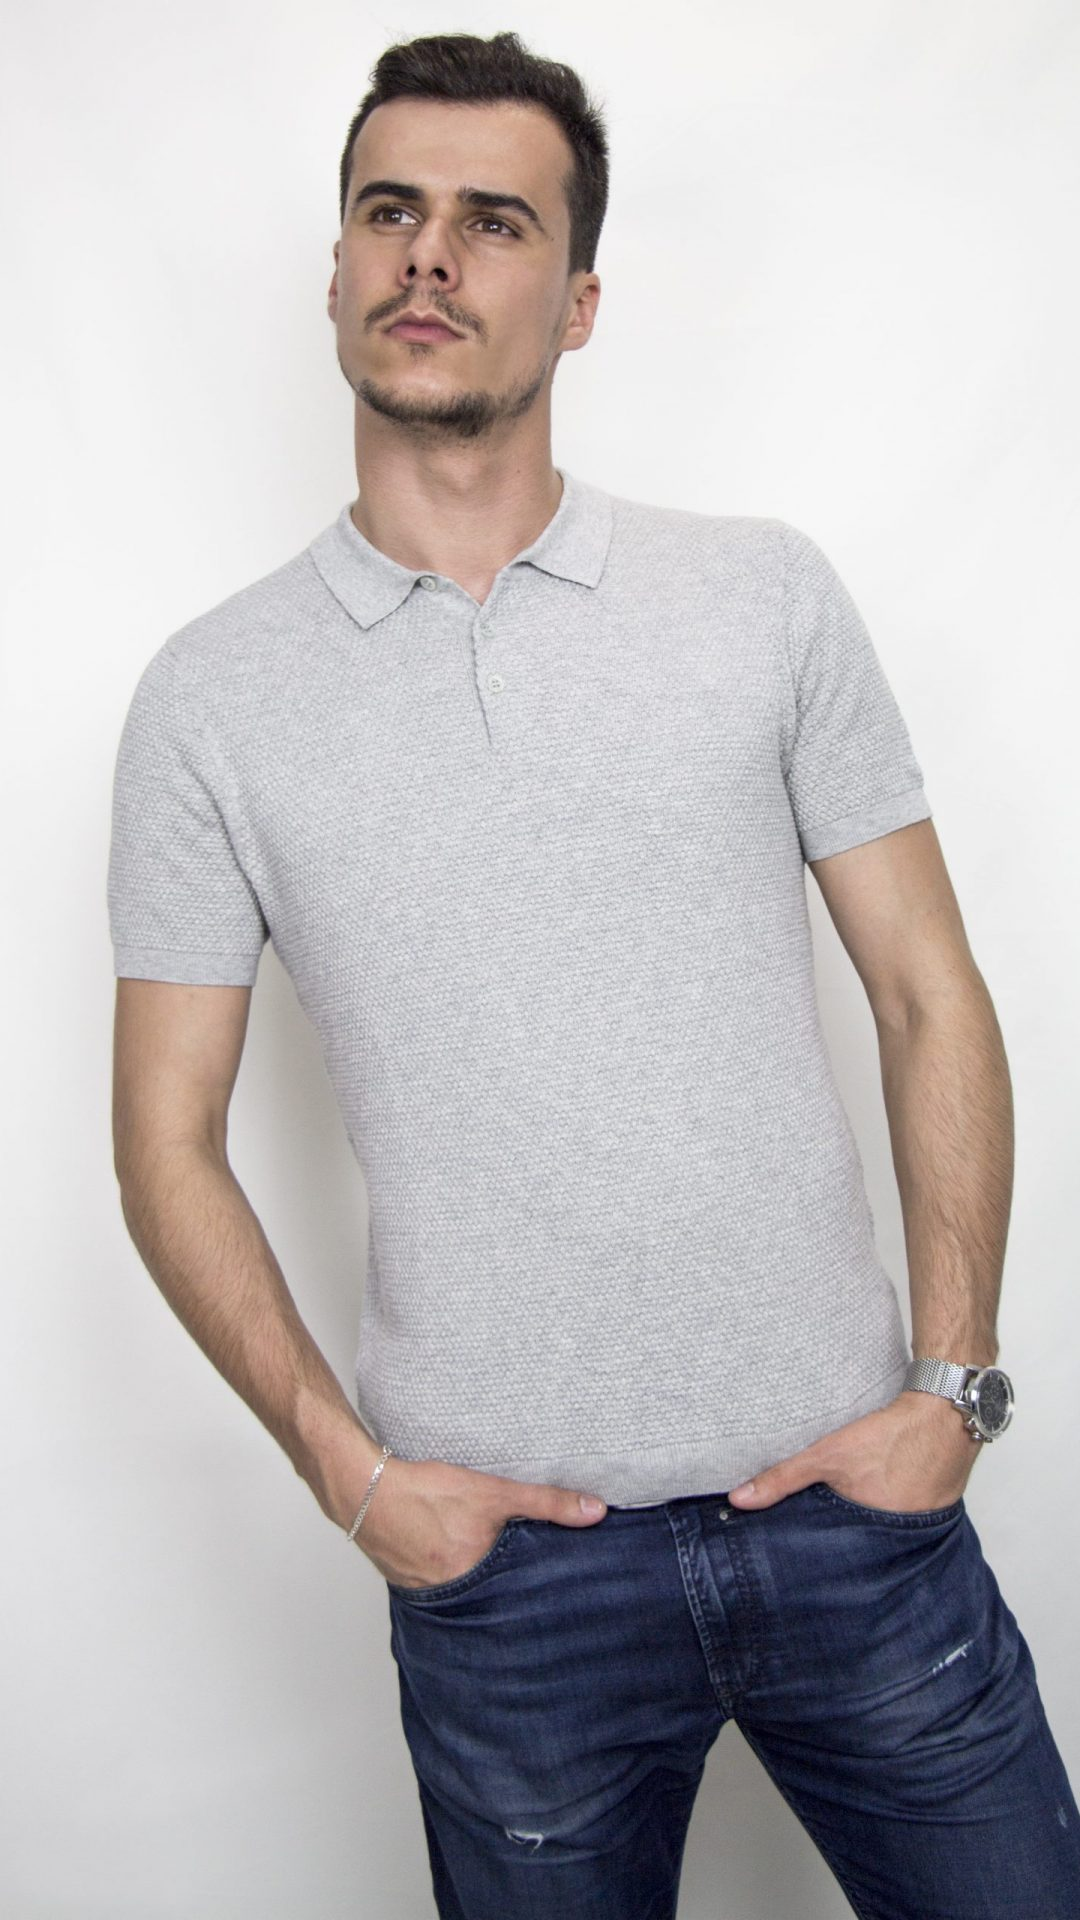 JERSEY-S20 (GREY)